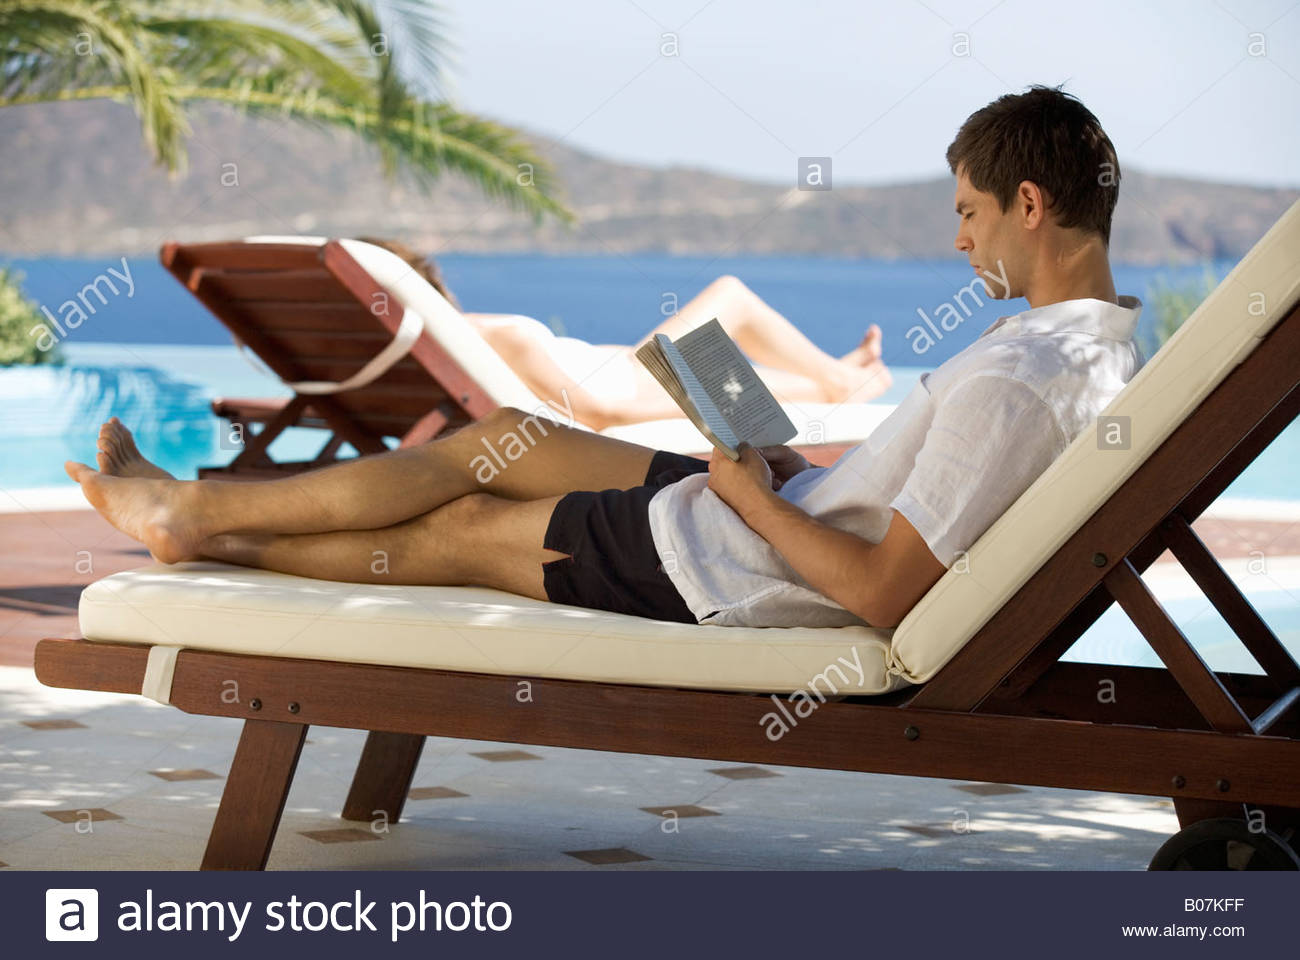 Image result for image of man on deck chair reading paperback